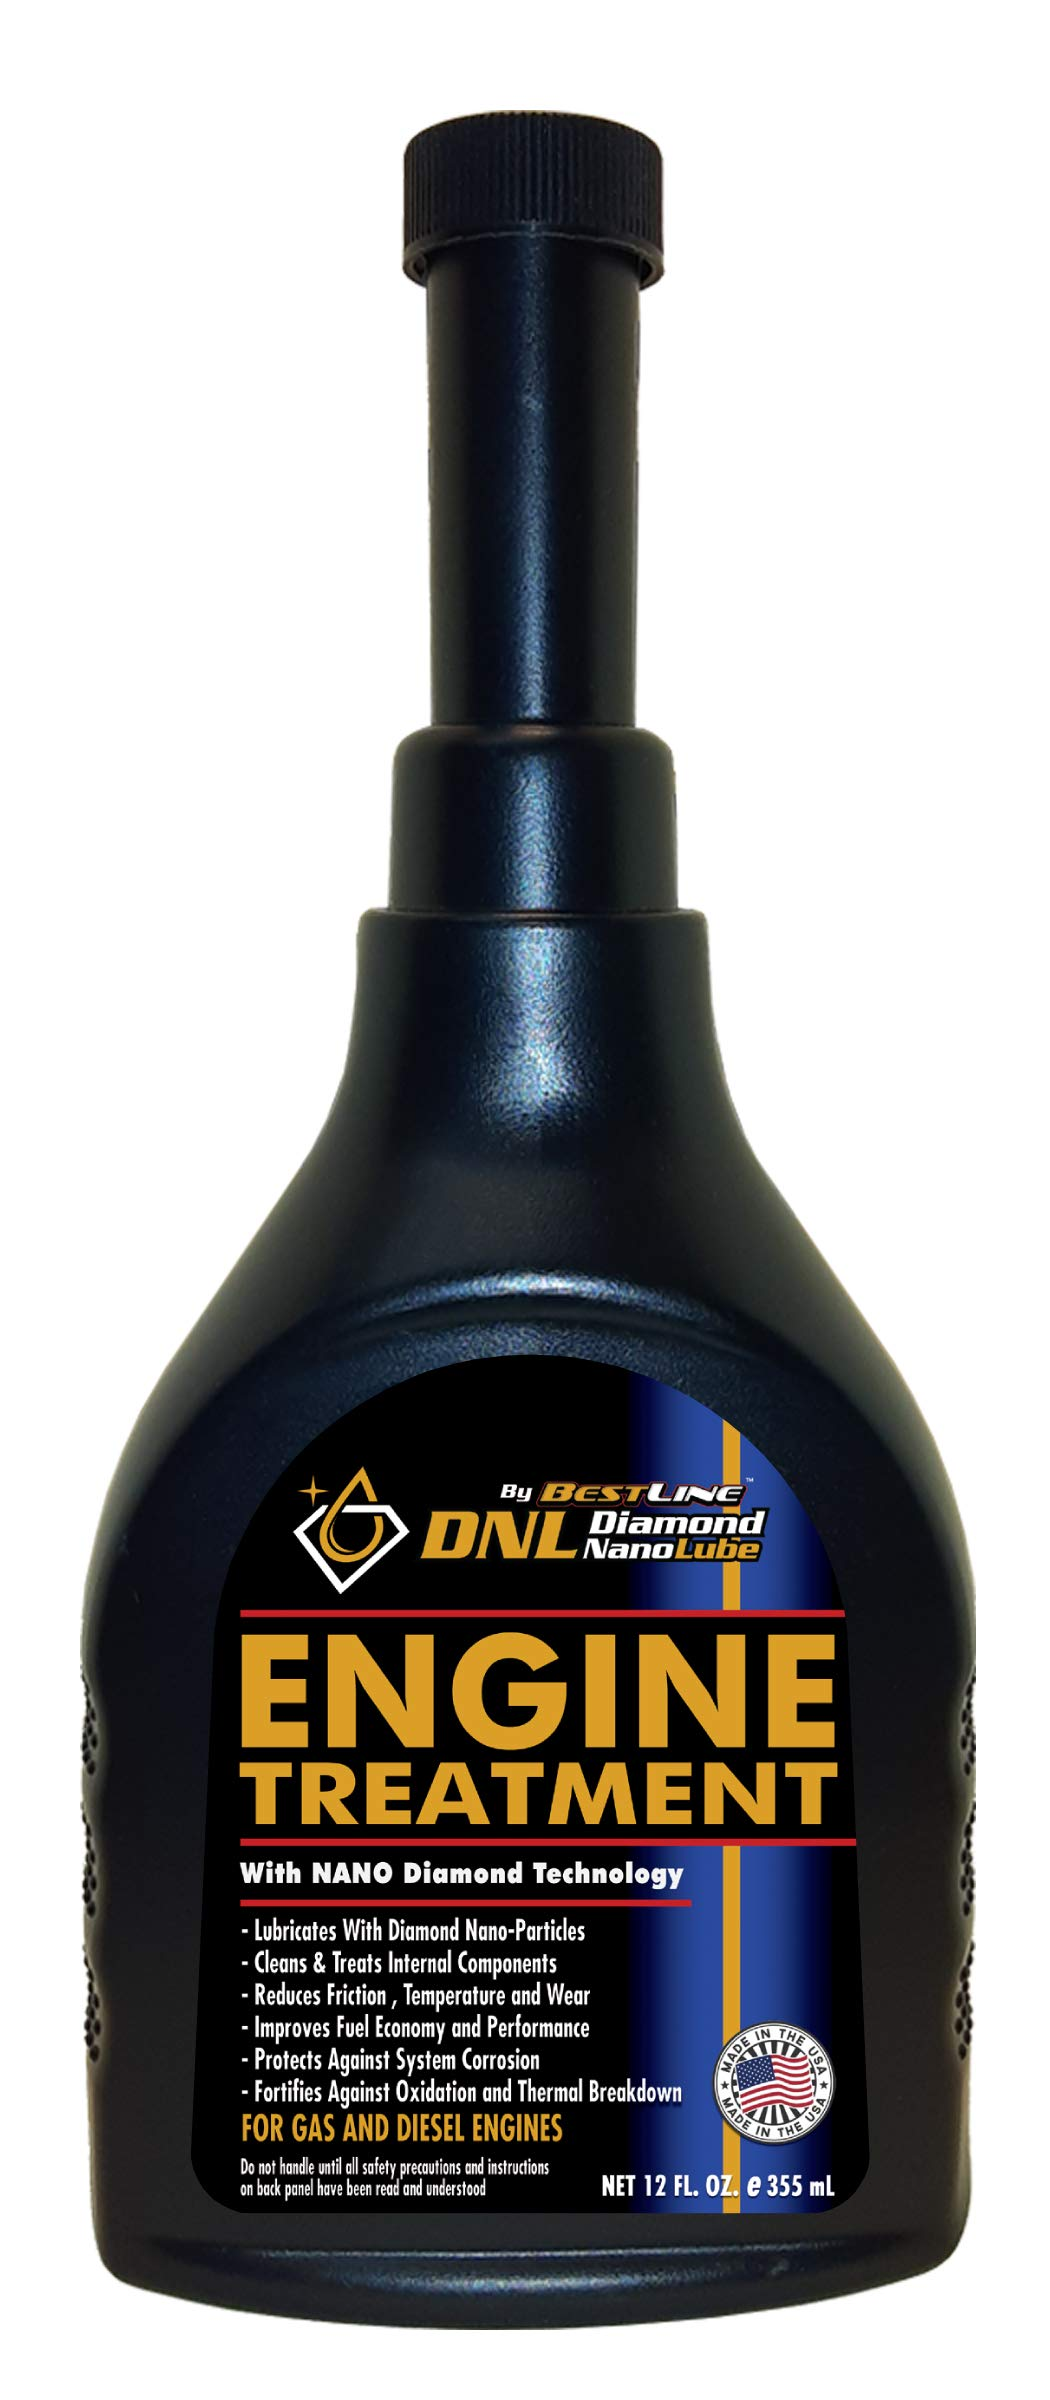 BestLine Premium Synthetic Engine Treatment with Nano Diamond Technology Extreme Pressure Lubricant for All Vehicles Gas or Diesel Cars Trucks – 12 oz